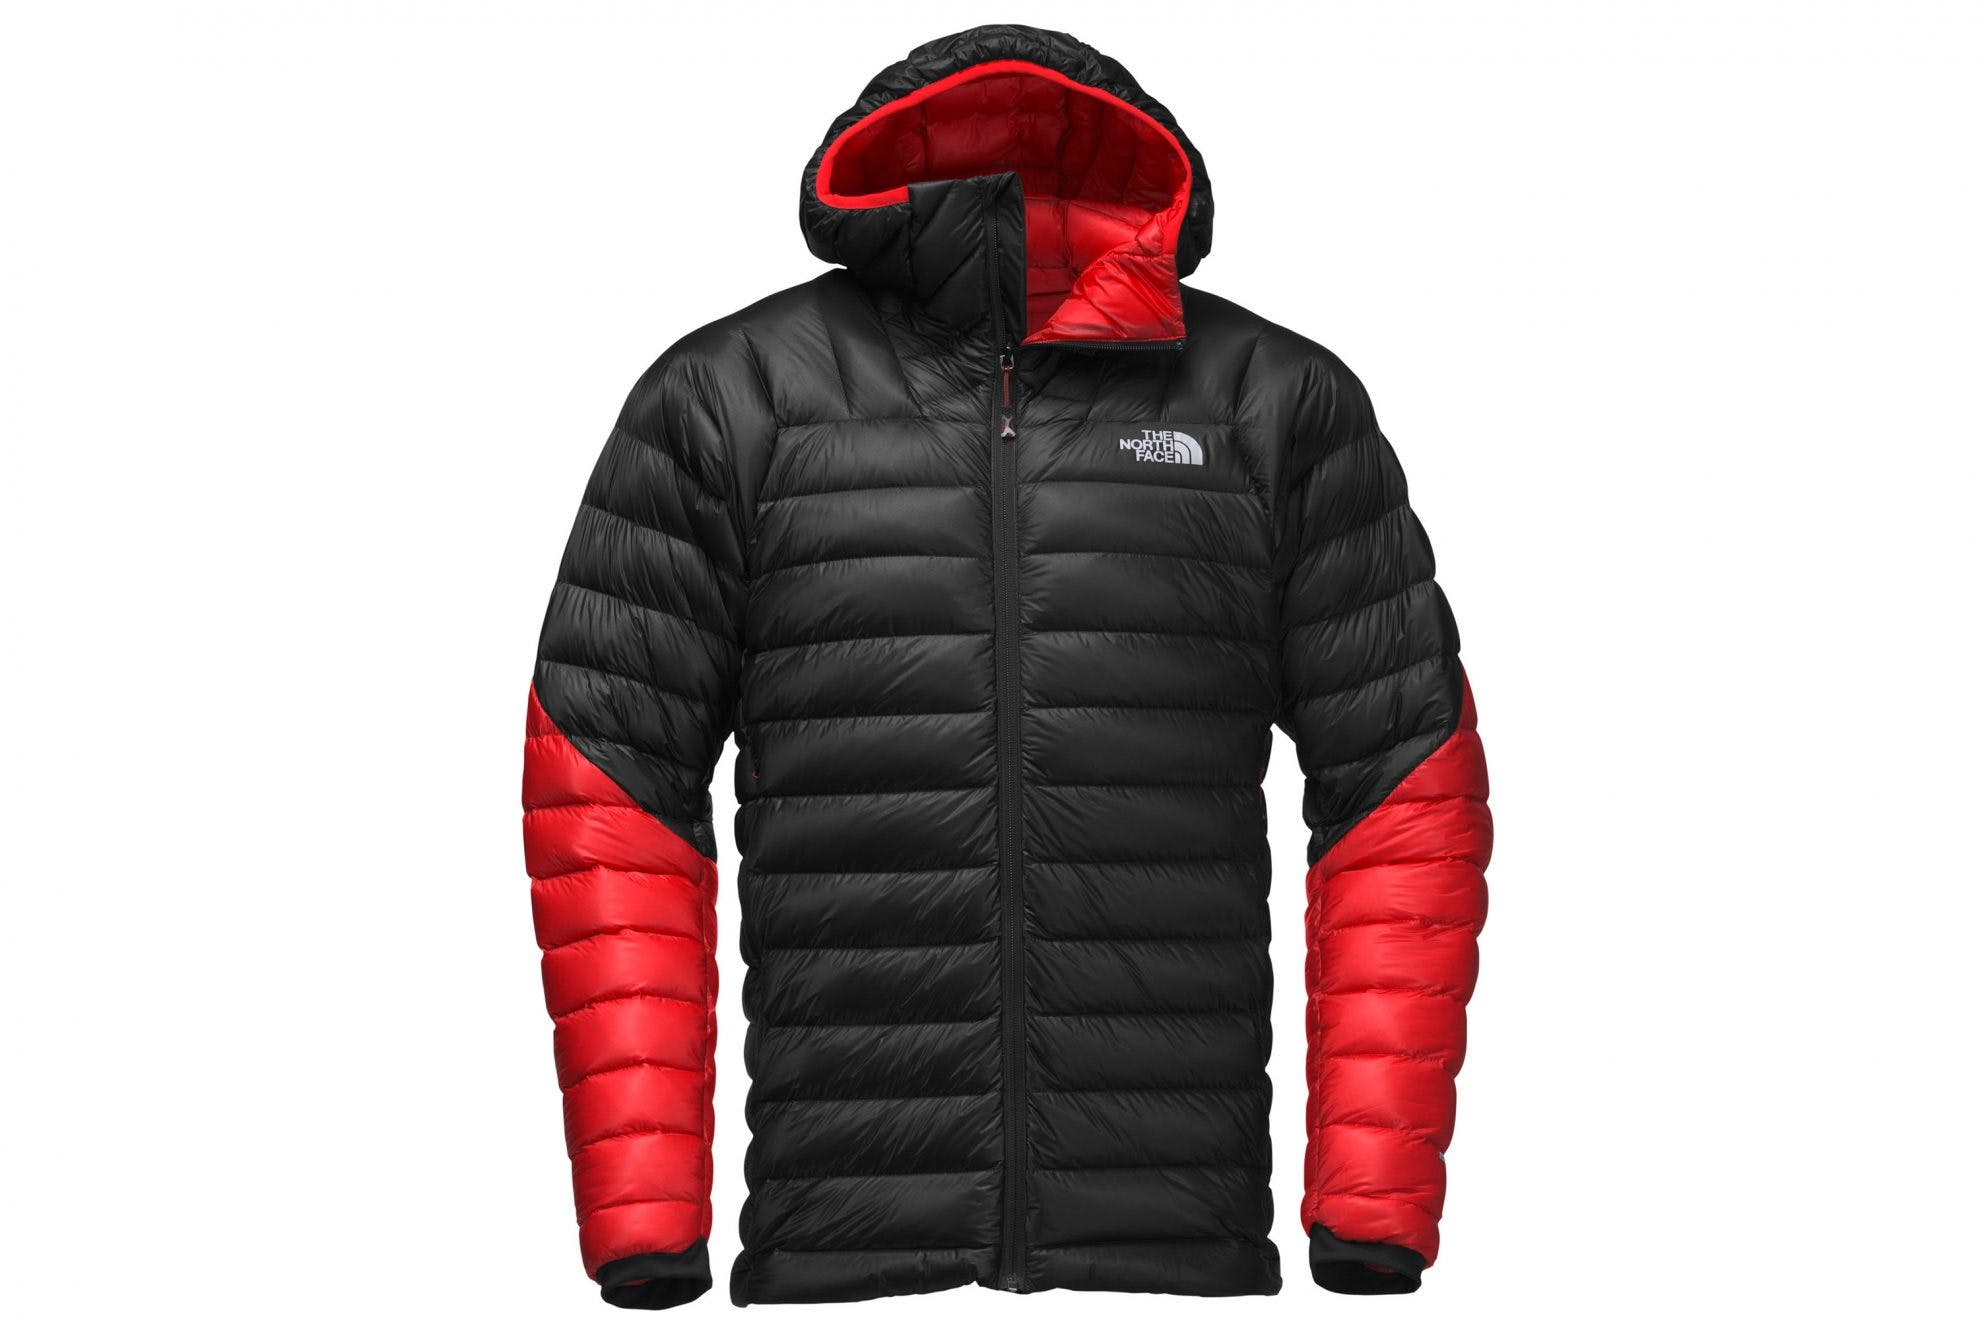 the best attitude 56c02 8c3e0 The North Face Summit Series L3 Down Hoodie Review ...